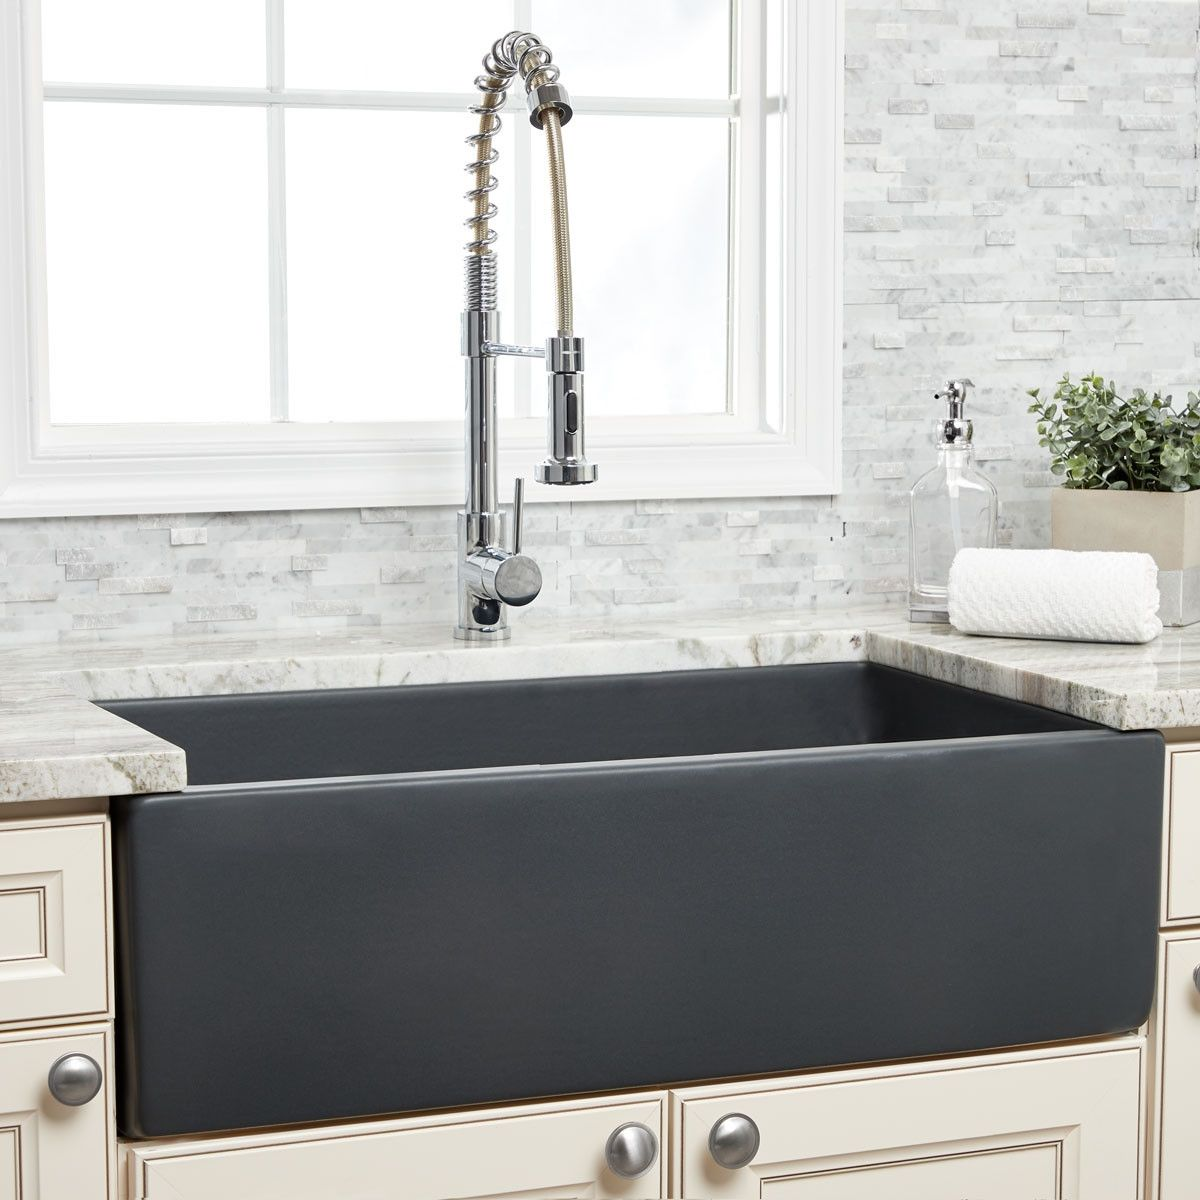 33 Matte Dark Gray Plain Front Rev Fireclay Apron Farm Sink In 2020 Farmhouse Apron Sink Farmhouse Sink Black Farmhouse Sink